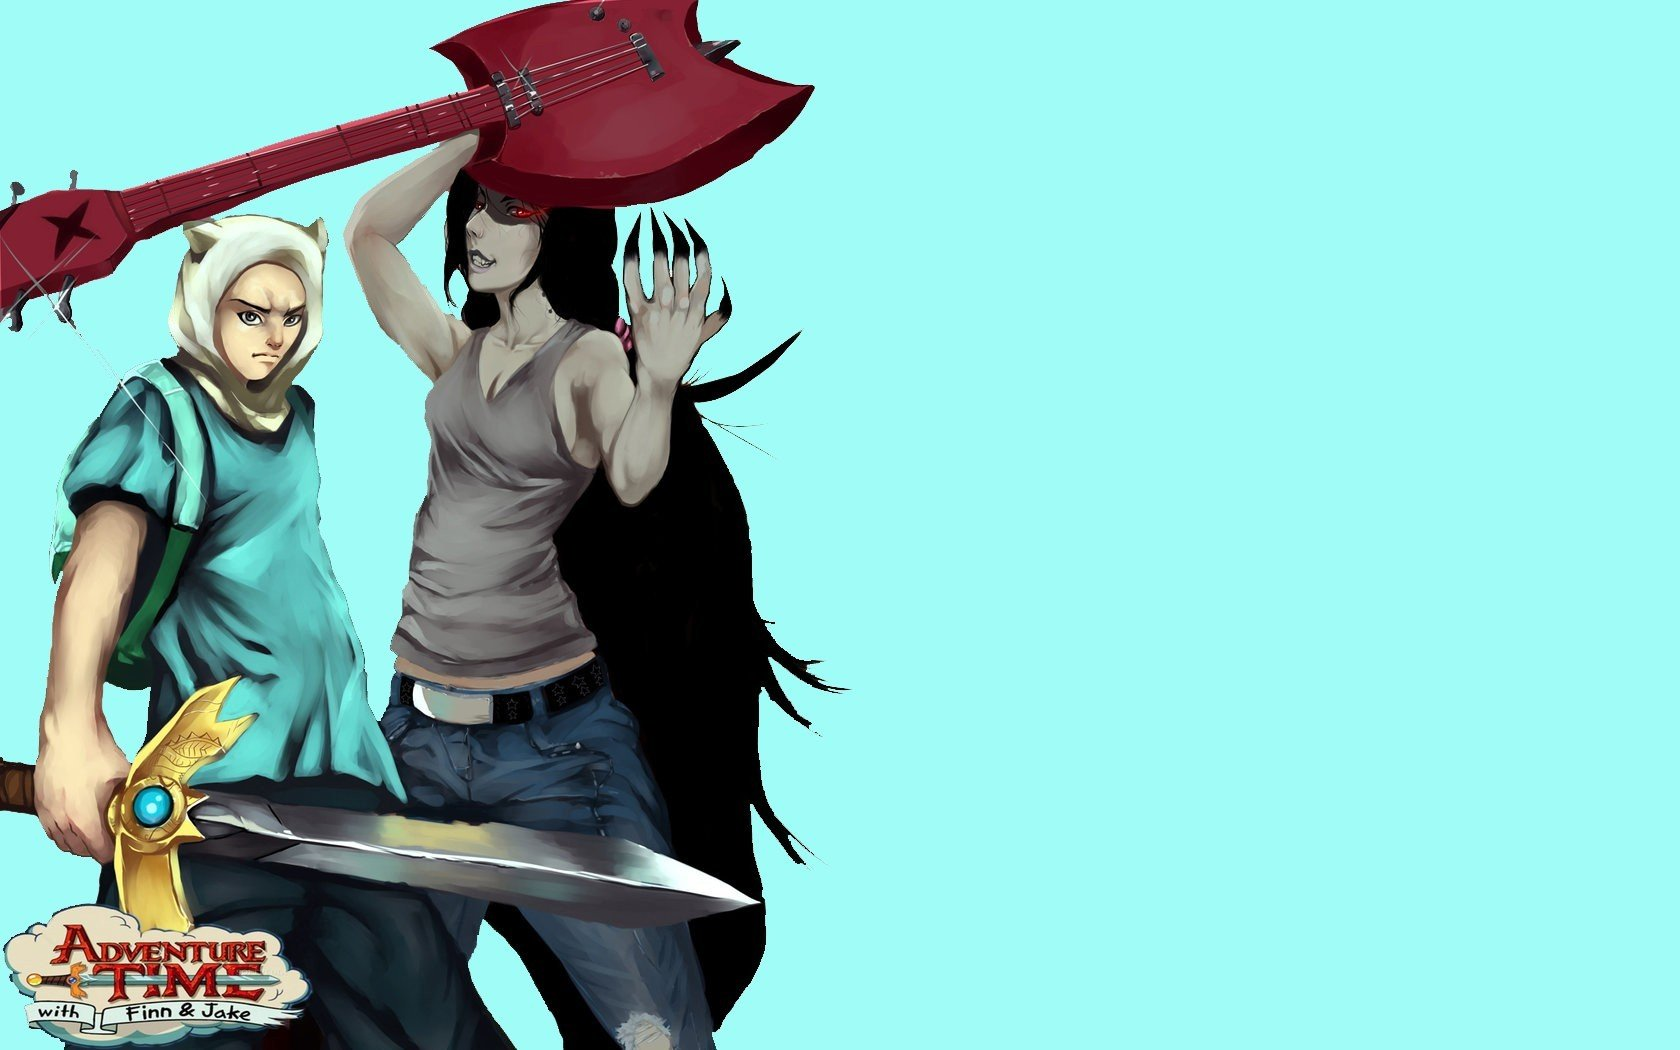 Adventure Time Anime Wallpaper Adventure Time Marceline The Vampire Queen Hd Wallpapers